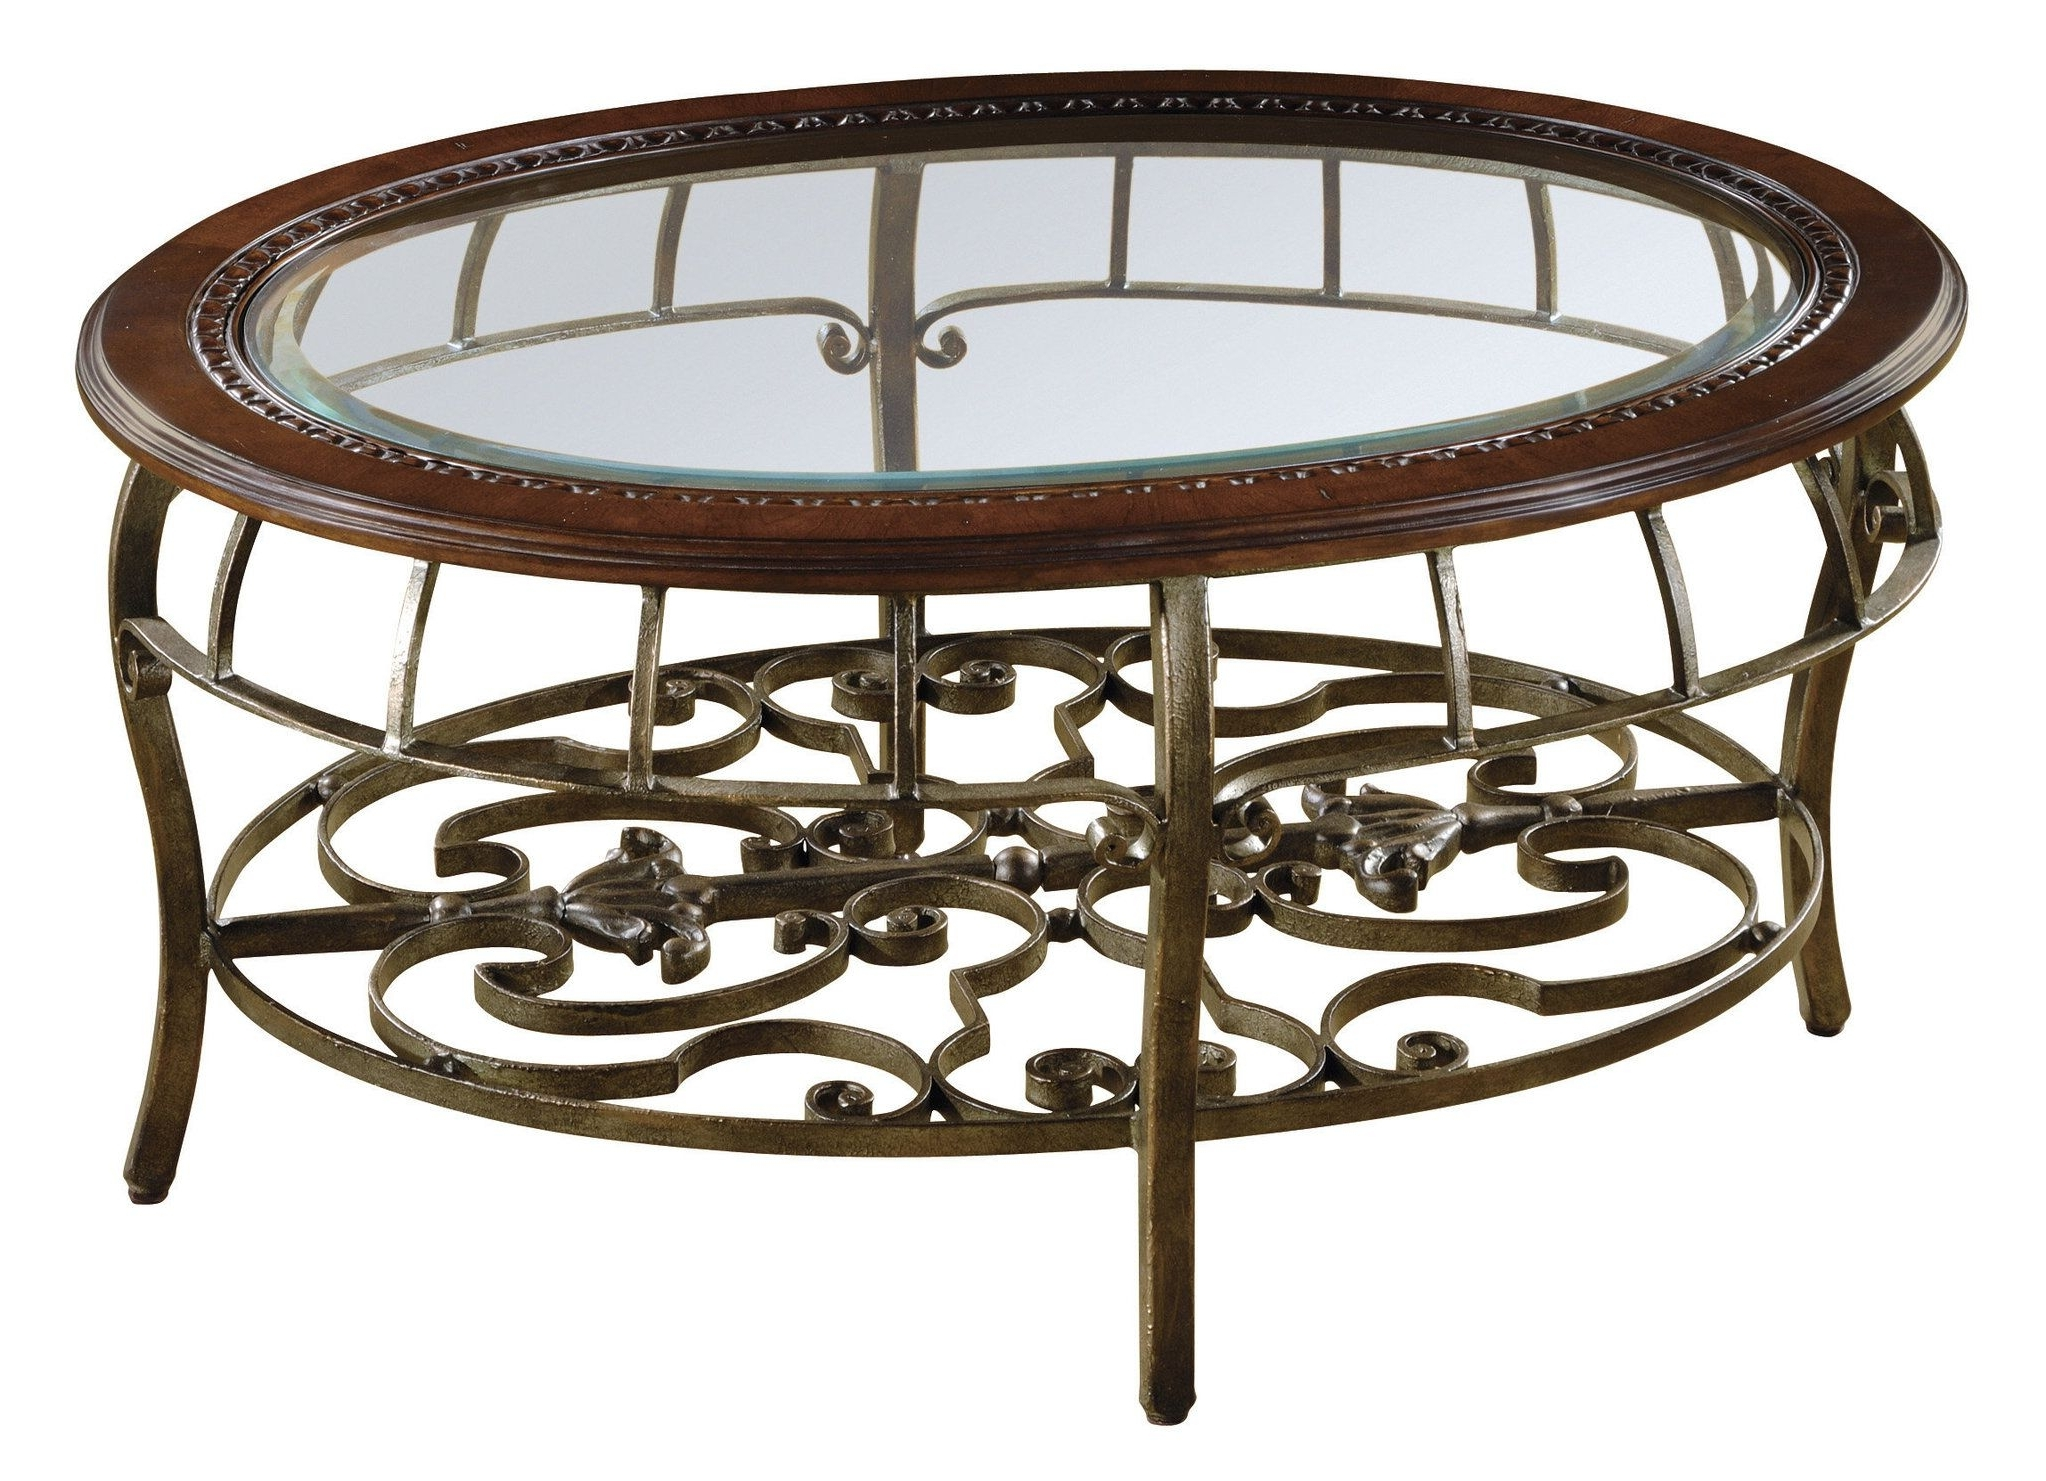 Round Beveled Glass Table – Traditional Coffee Table With Metal Base Intended For Latest Traditional Coffee Tables (View 12 of 20)